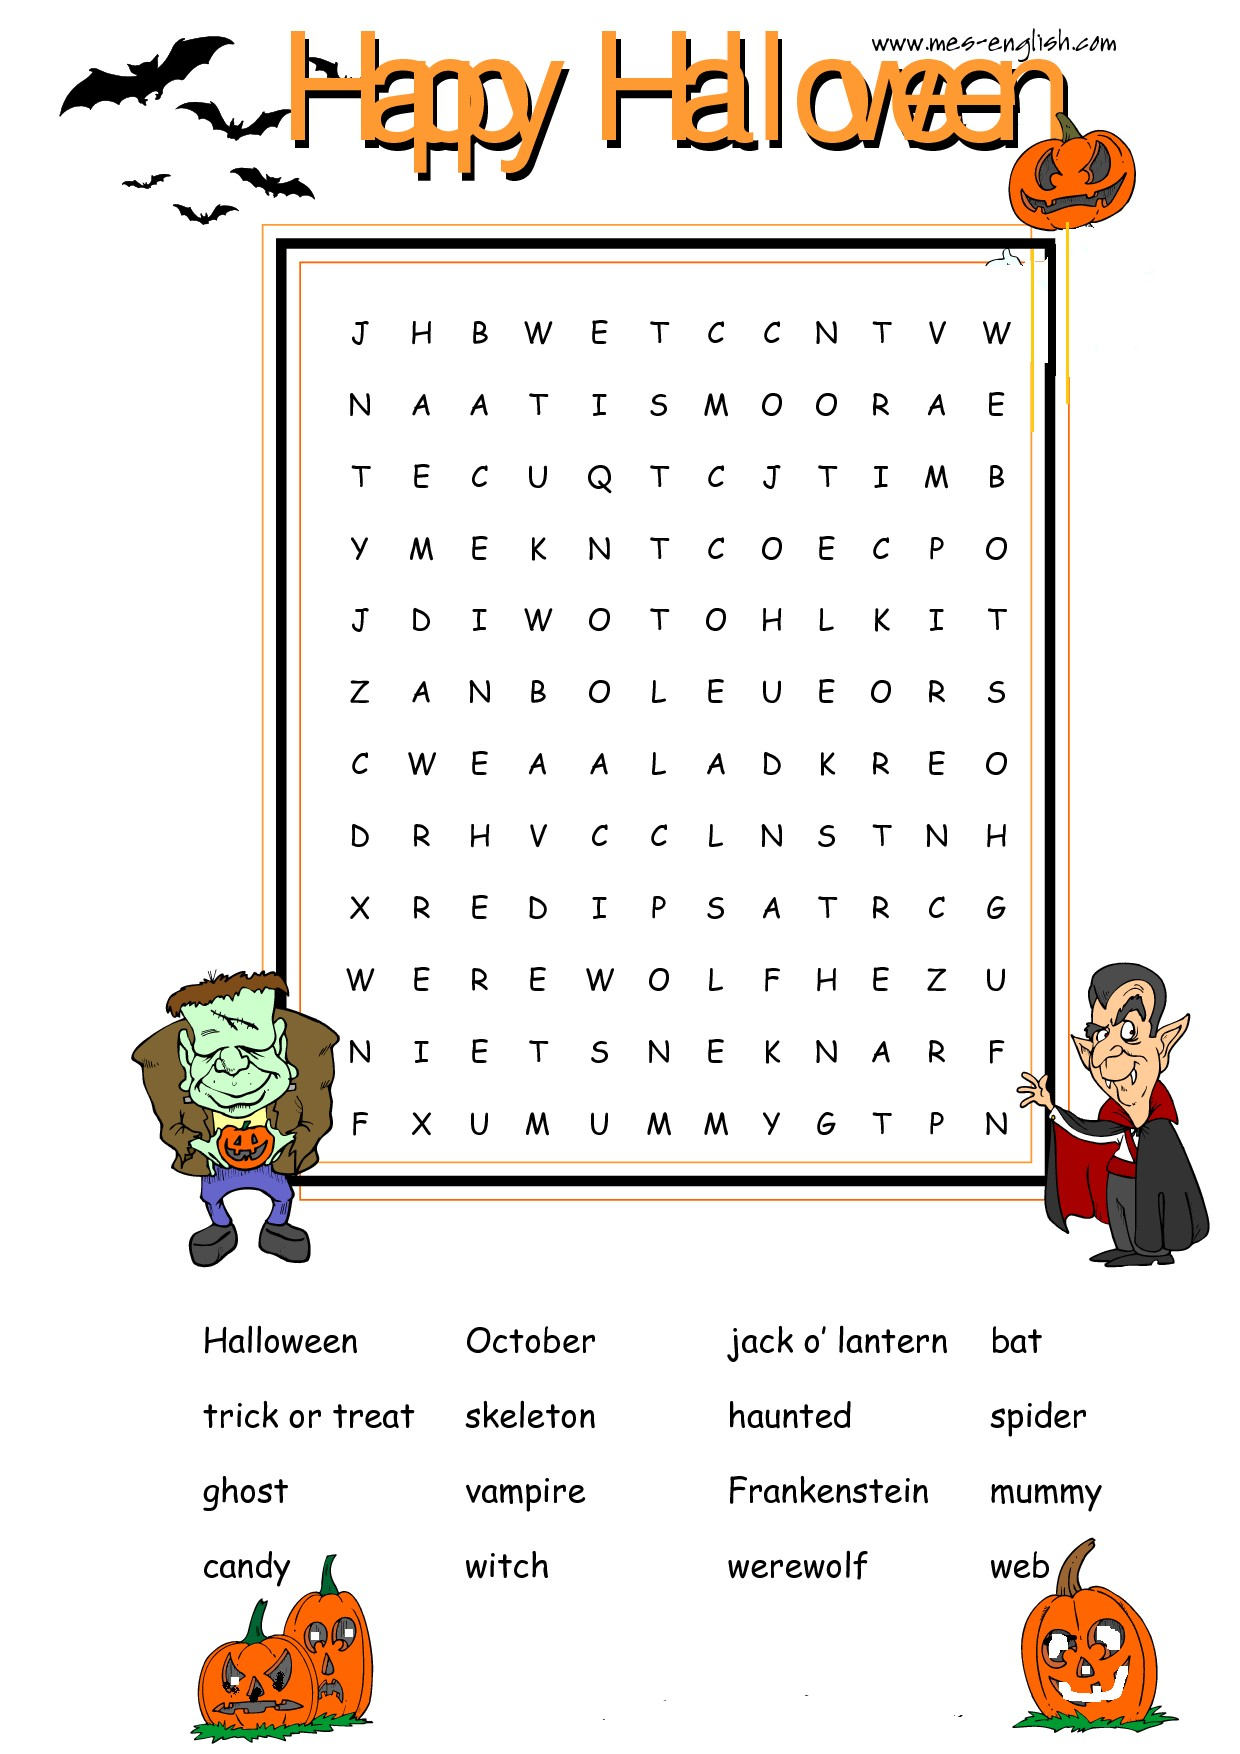 Worksheets Halloween Printable Worksheets halloween jokes and worksheets reks educational ios applications printable word search puzzle